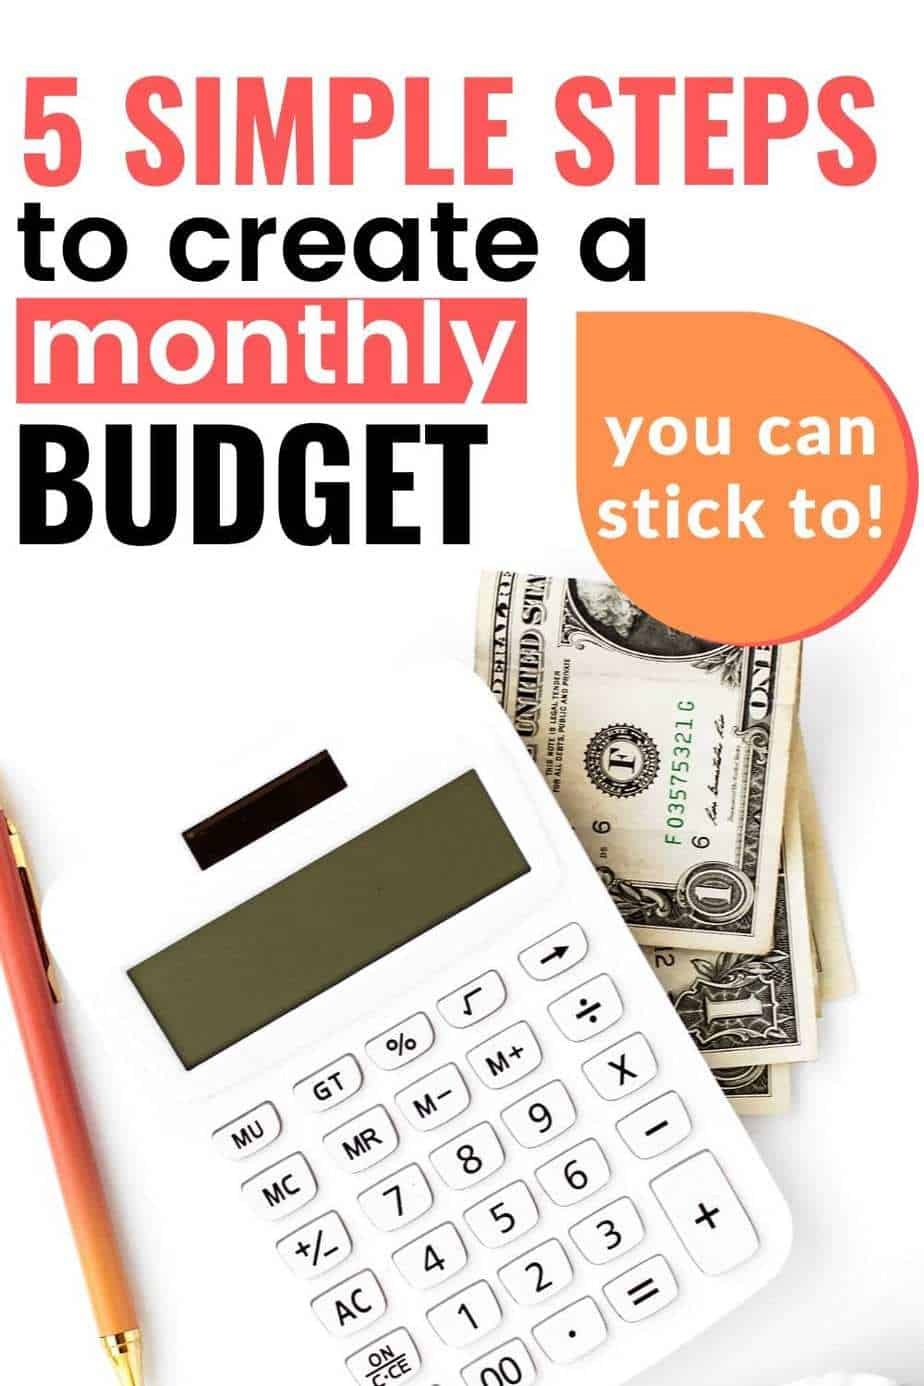 5 simple steps to create a monthly budget